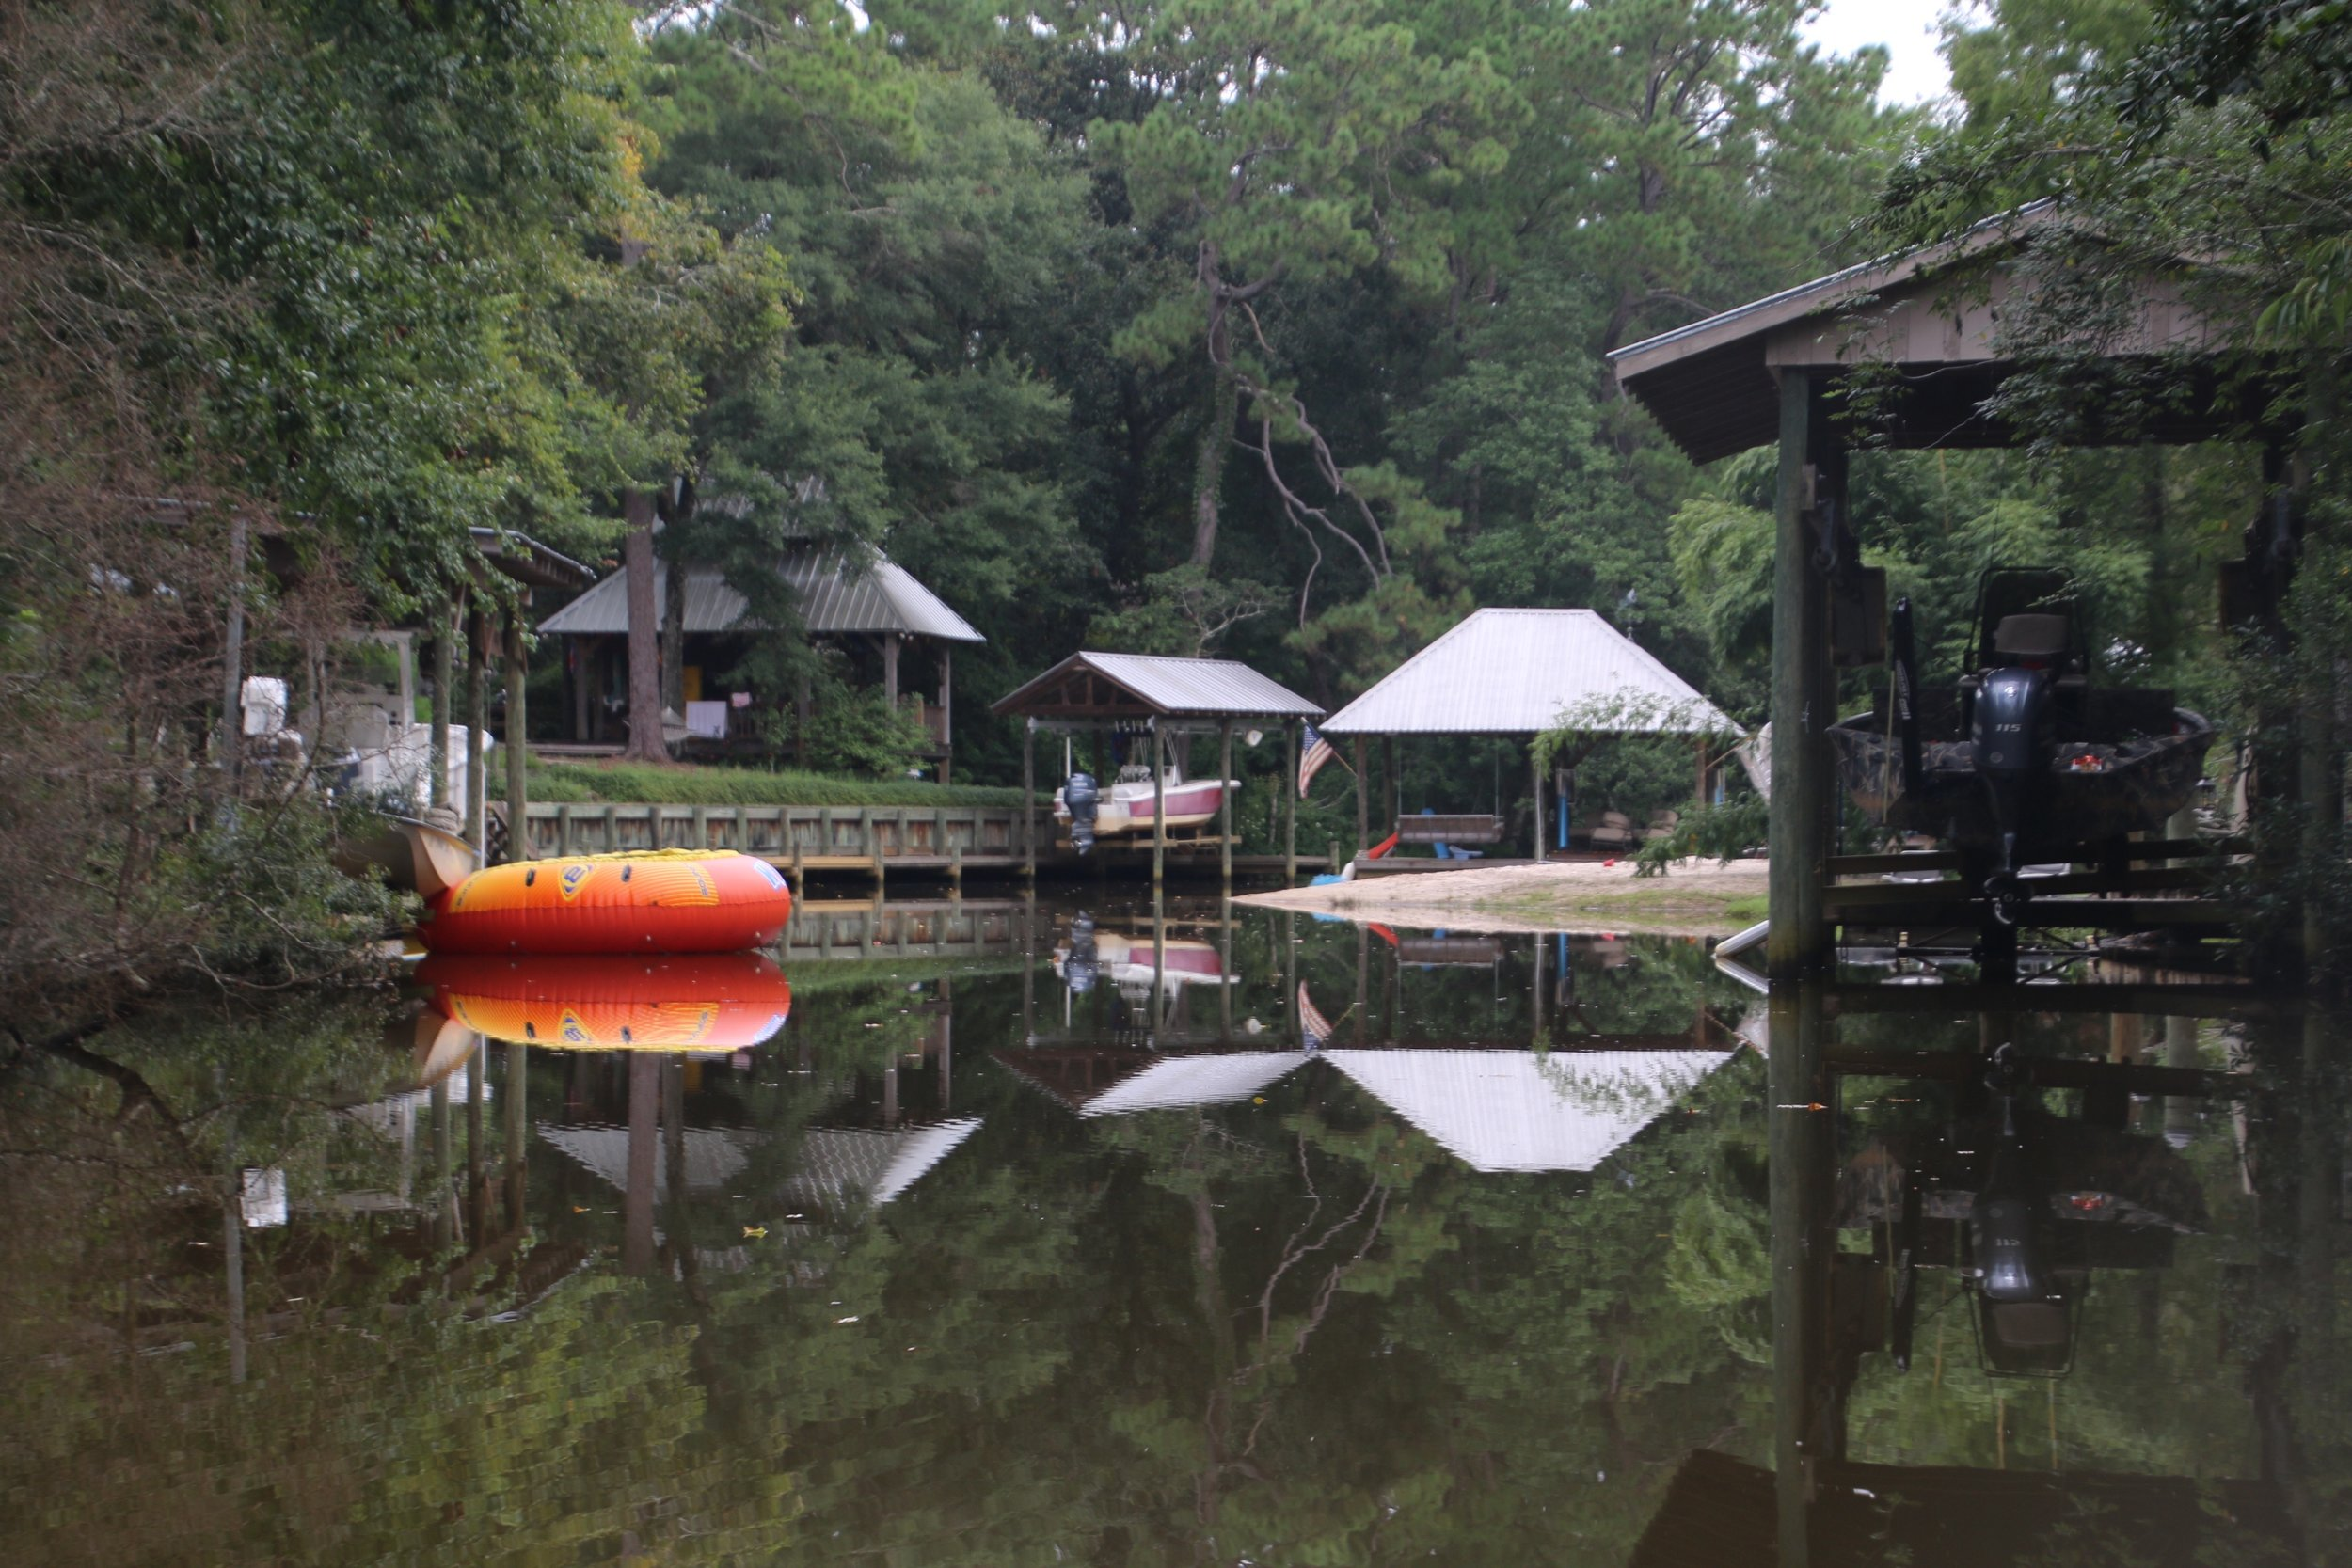 Boathouses where families typically enjoy swimming, and playing in Fly Creek.